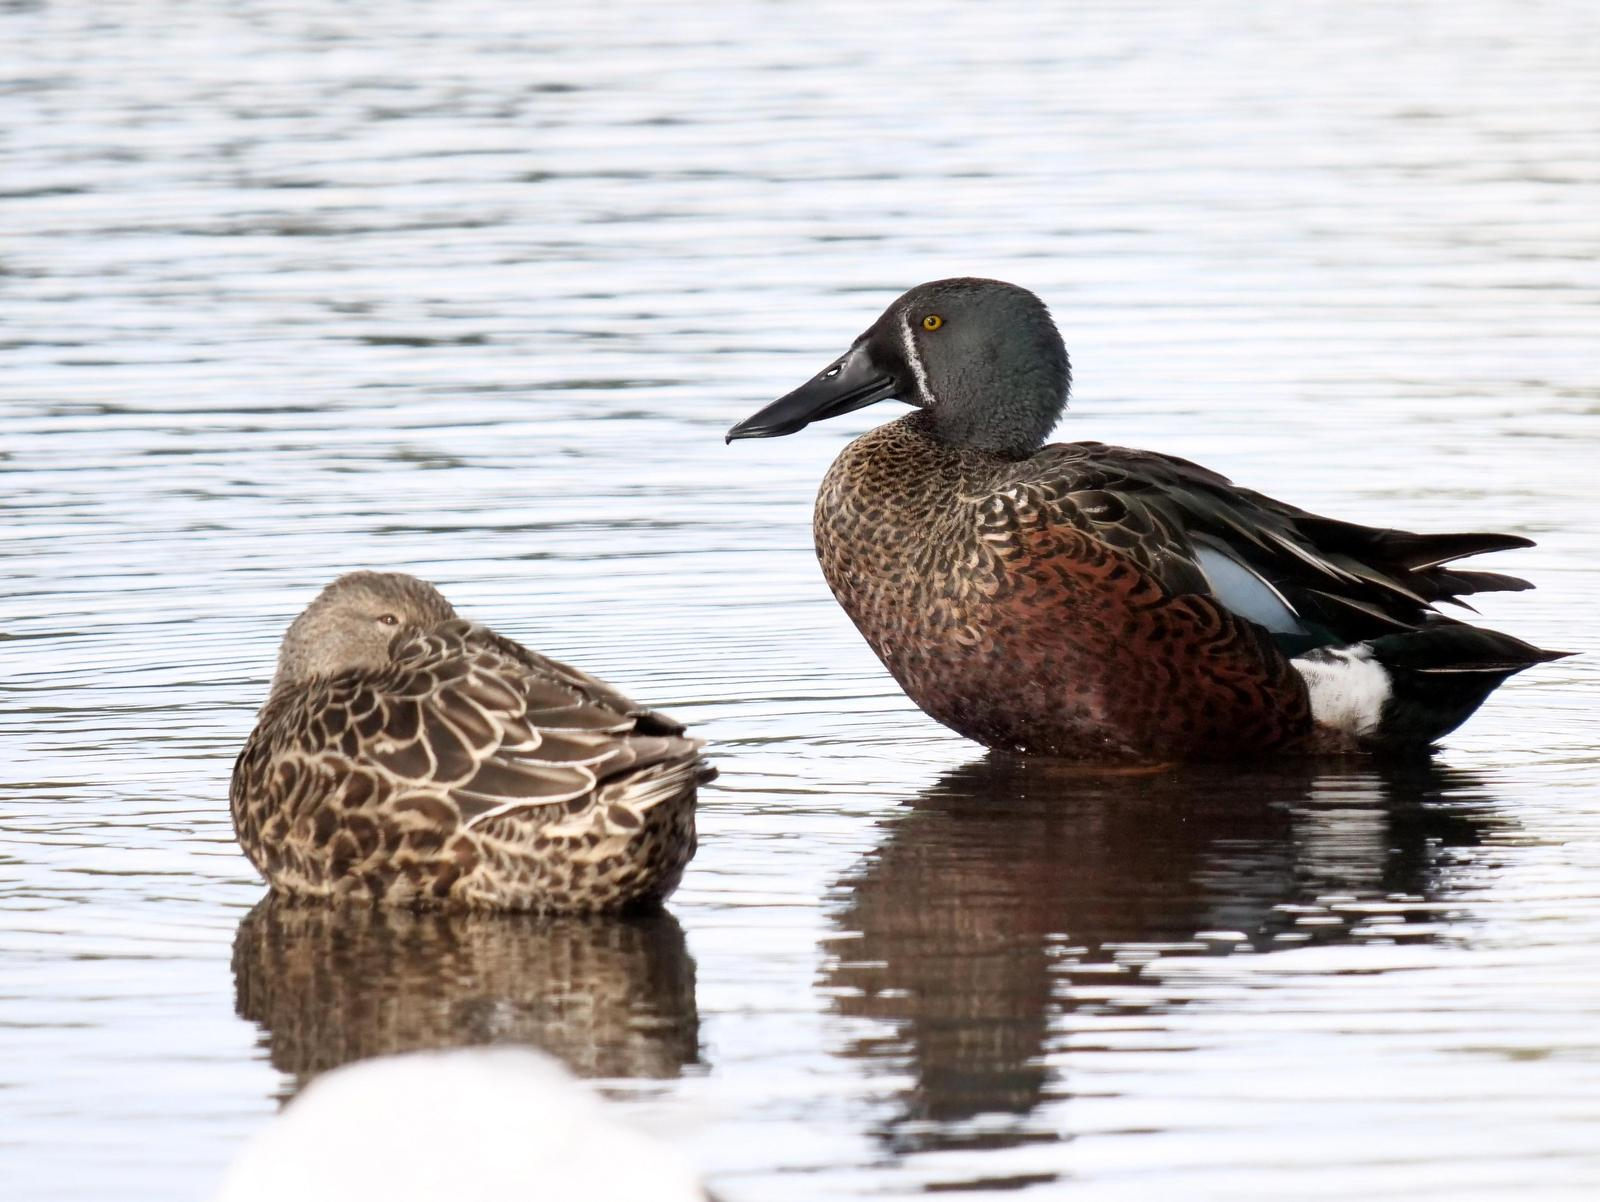 Australian Shoveler Photo by Peter Lowe